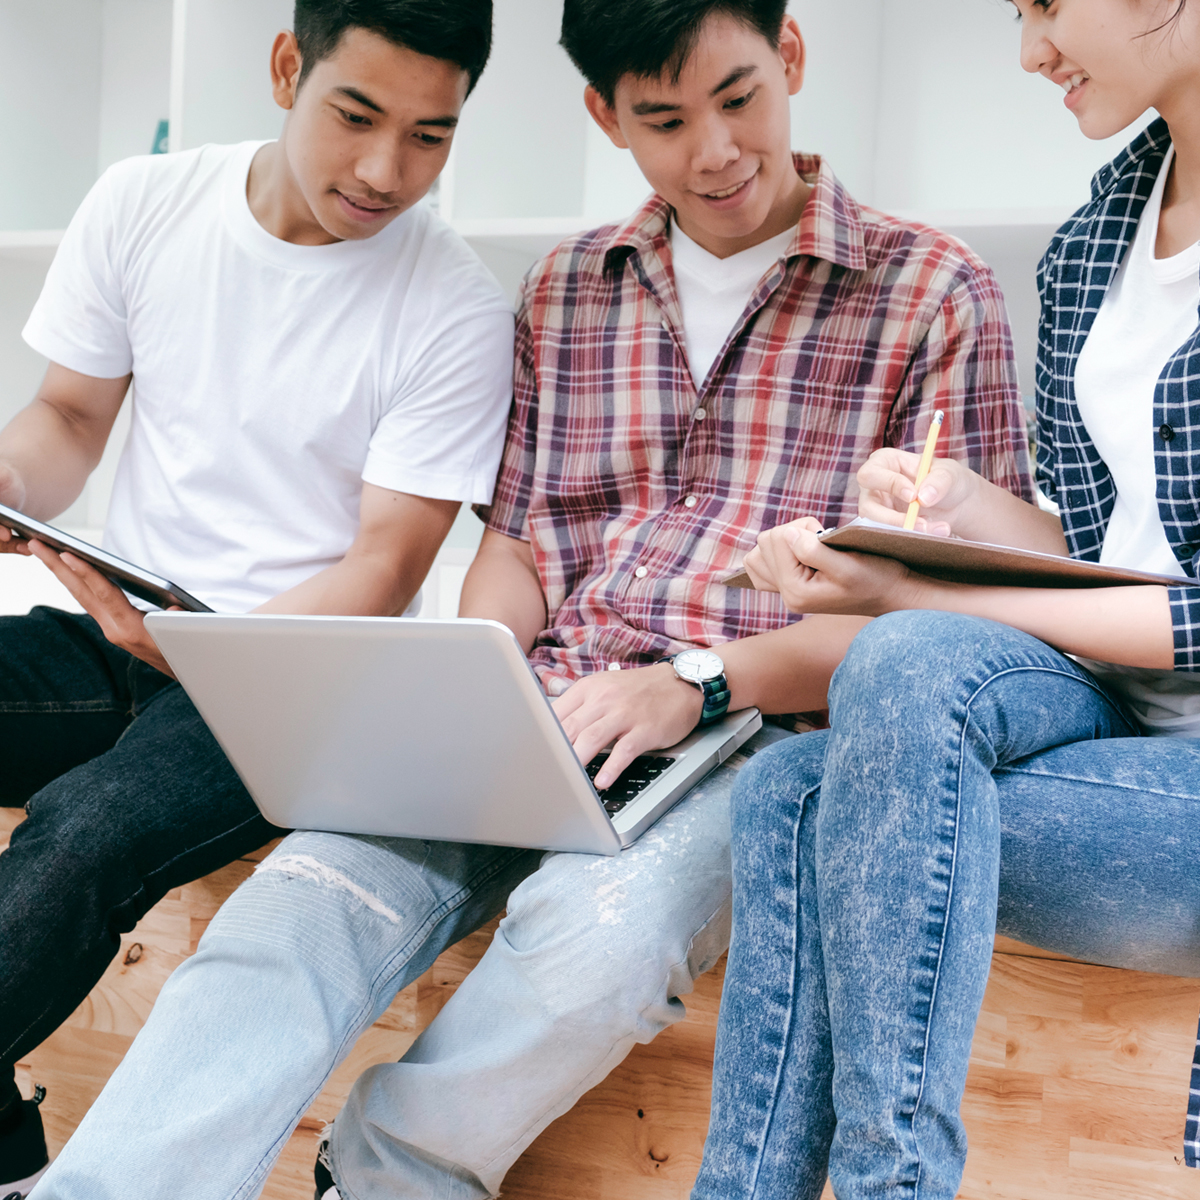 group of students looking at a computer